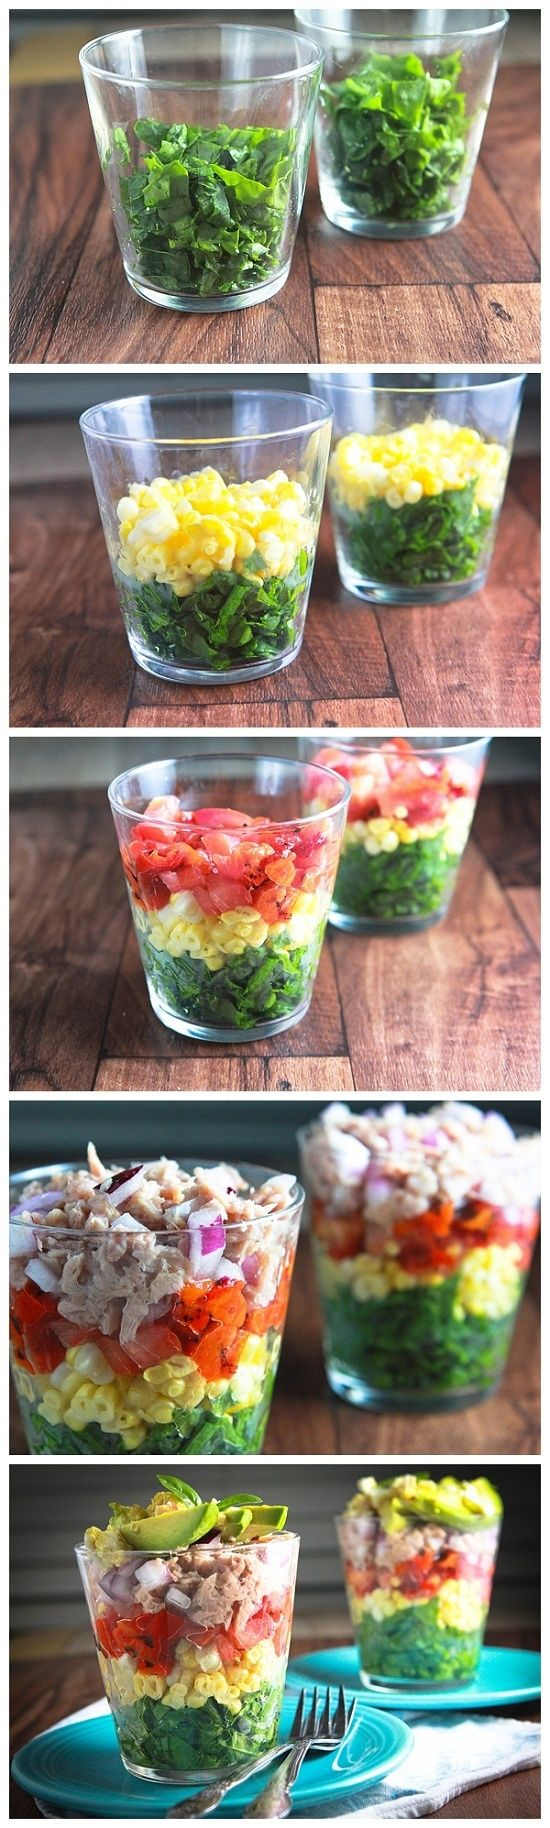 Rainbow Salad in a Glass. I think this is a smart idea for serving salad at a party , guests can pour out theirs on their plate then apply dressing